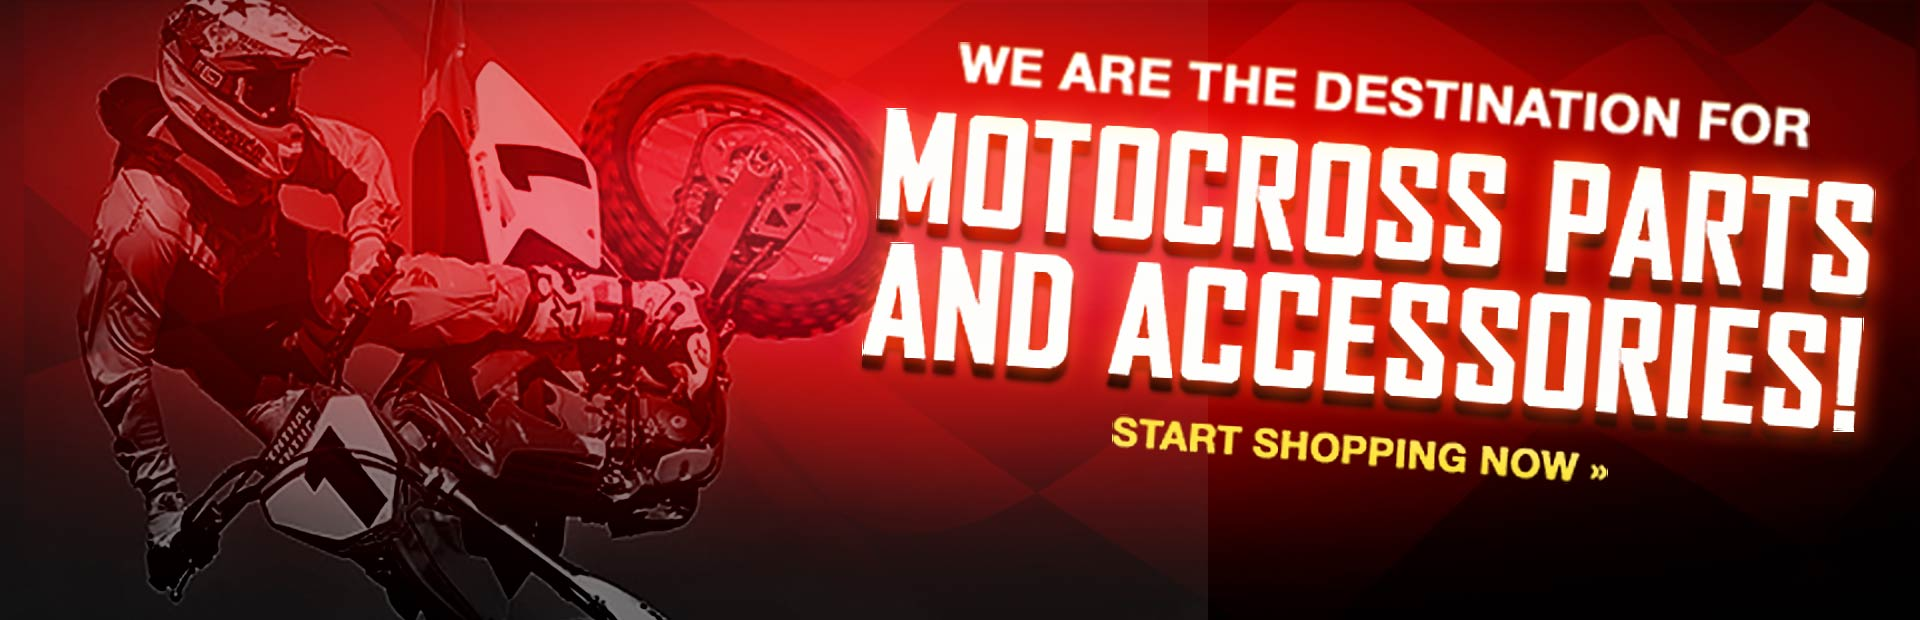 Motocross Garage Accessories San Diego Riding Gear Parts Accessories For Mx Atvs Dirt Bikes